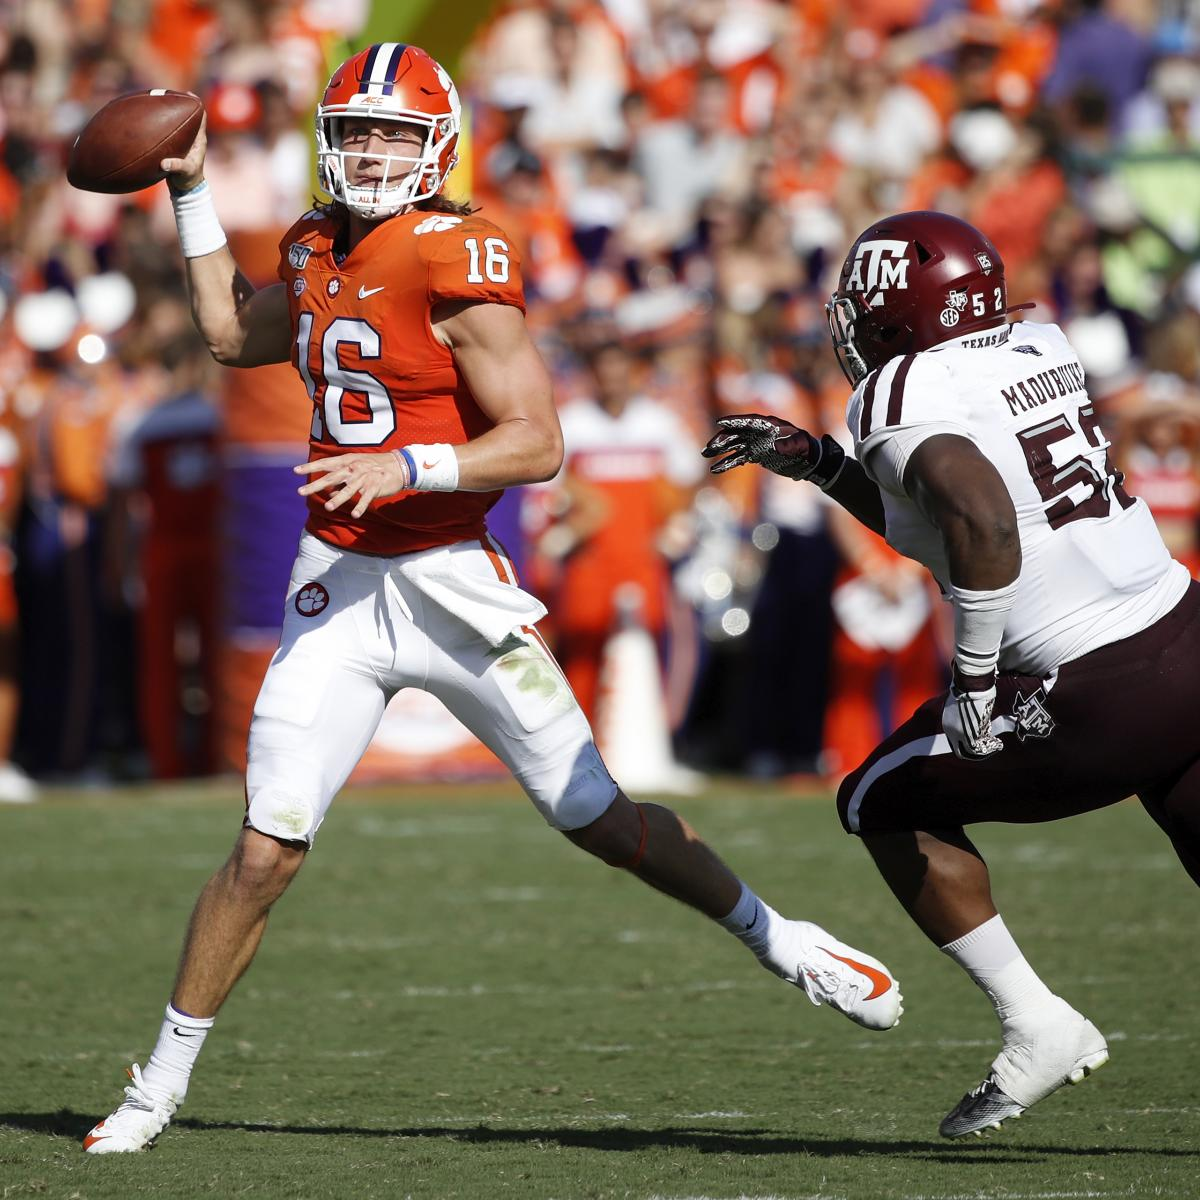 Trevor Lawrence's Mistake-Plagued Start Is an Issue, but ...